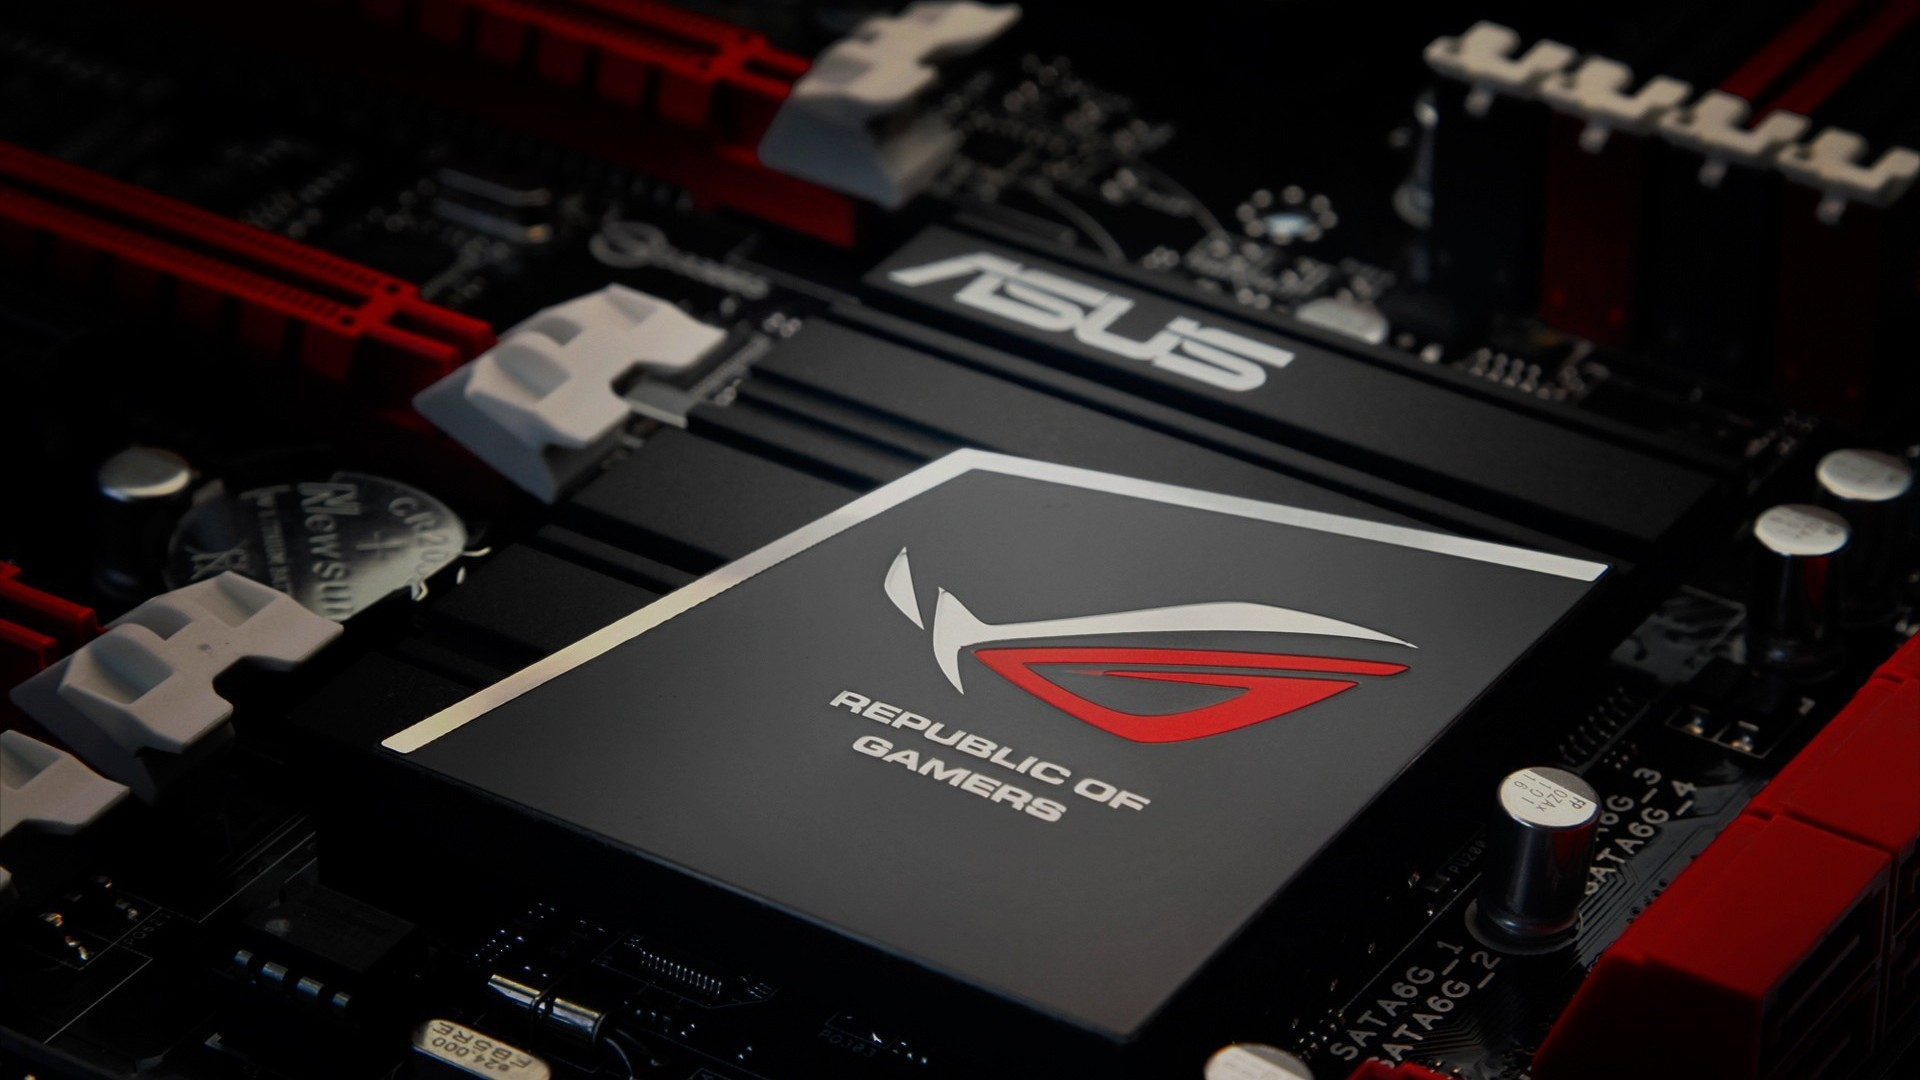 Asus Republic Of Gamers Hd Computer 4k Wallpapers Images Backgrounds Photos And Pictures